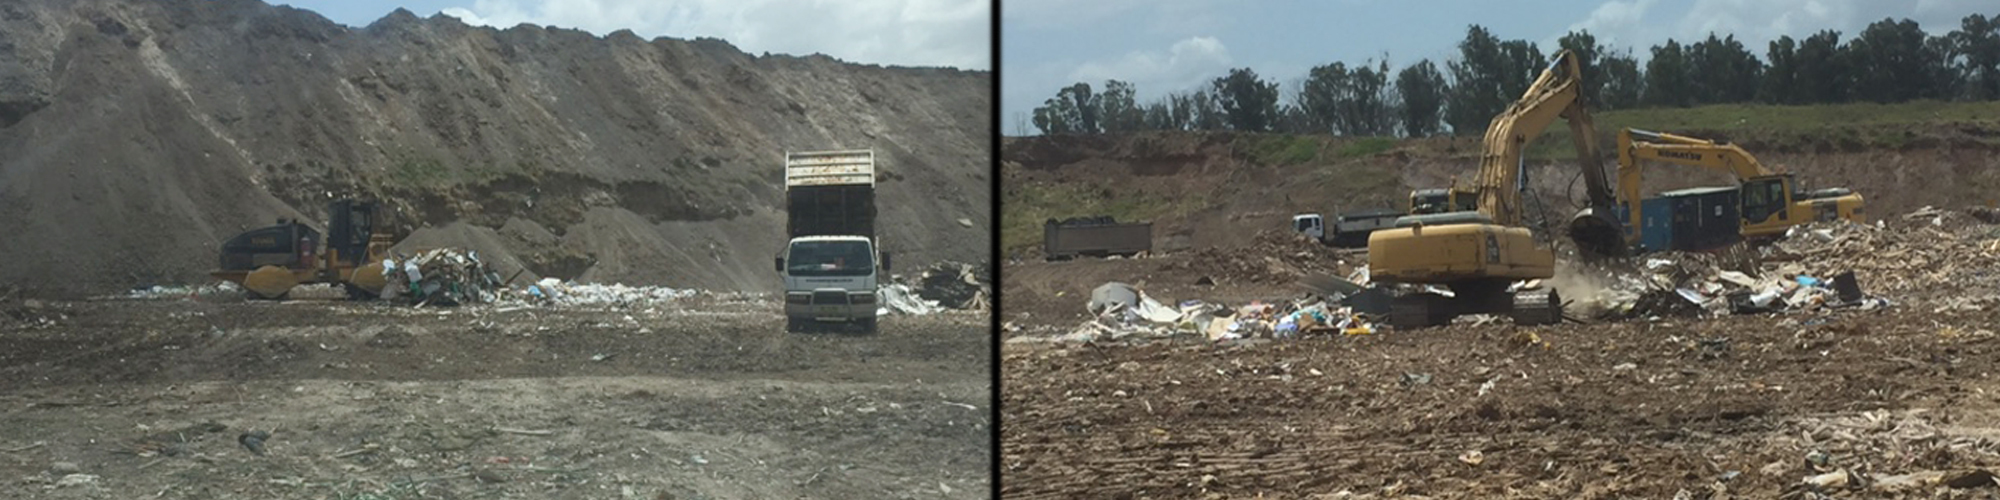 Waste being disposed at the site